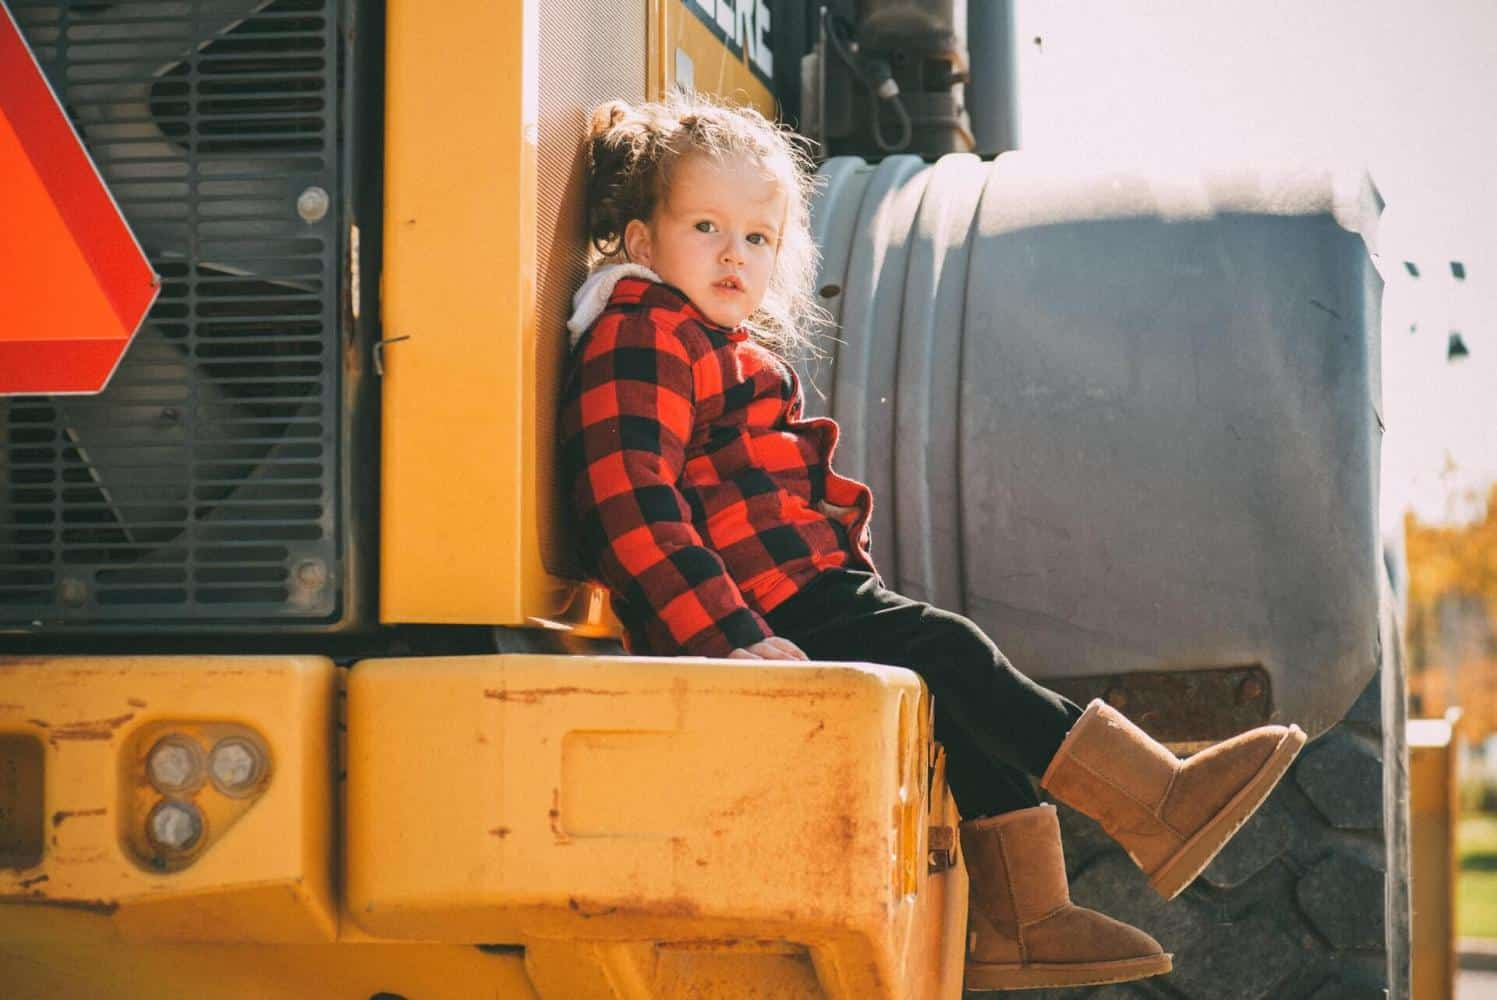 A toddler girl sitting on yellow heavy equipment.